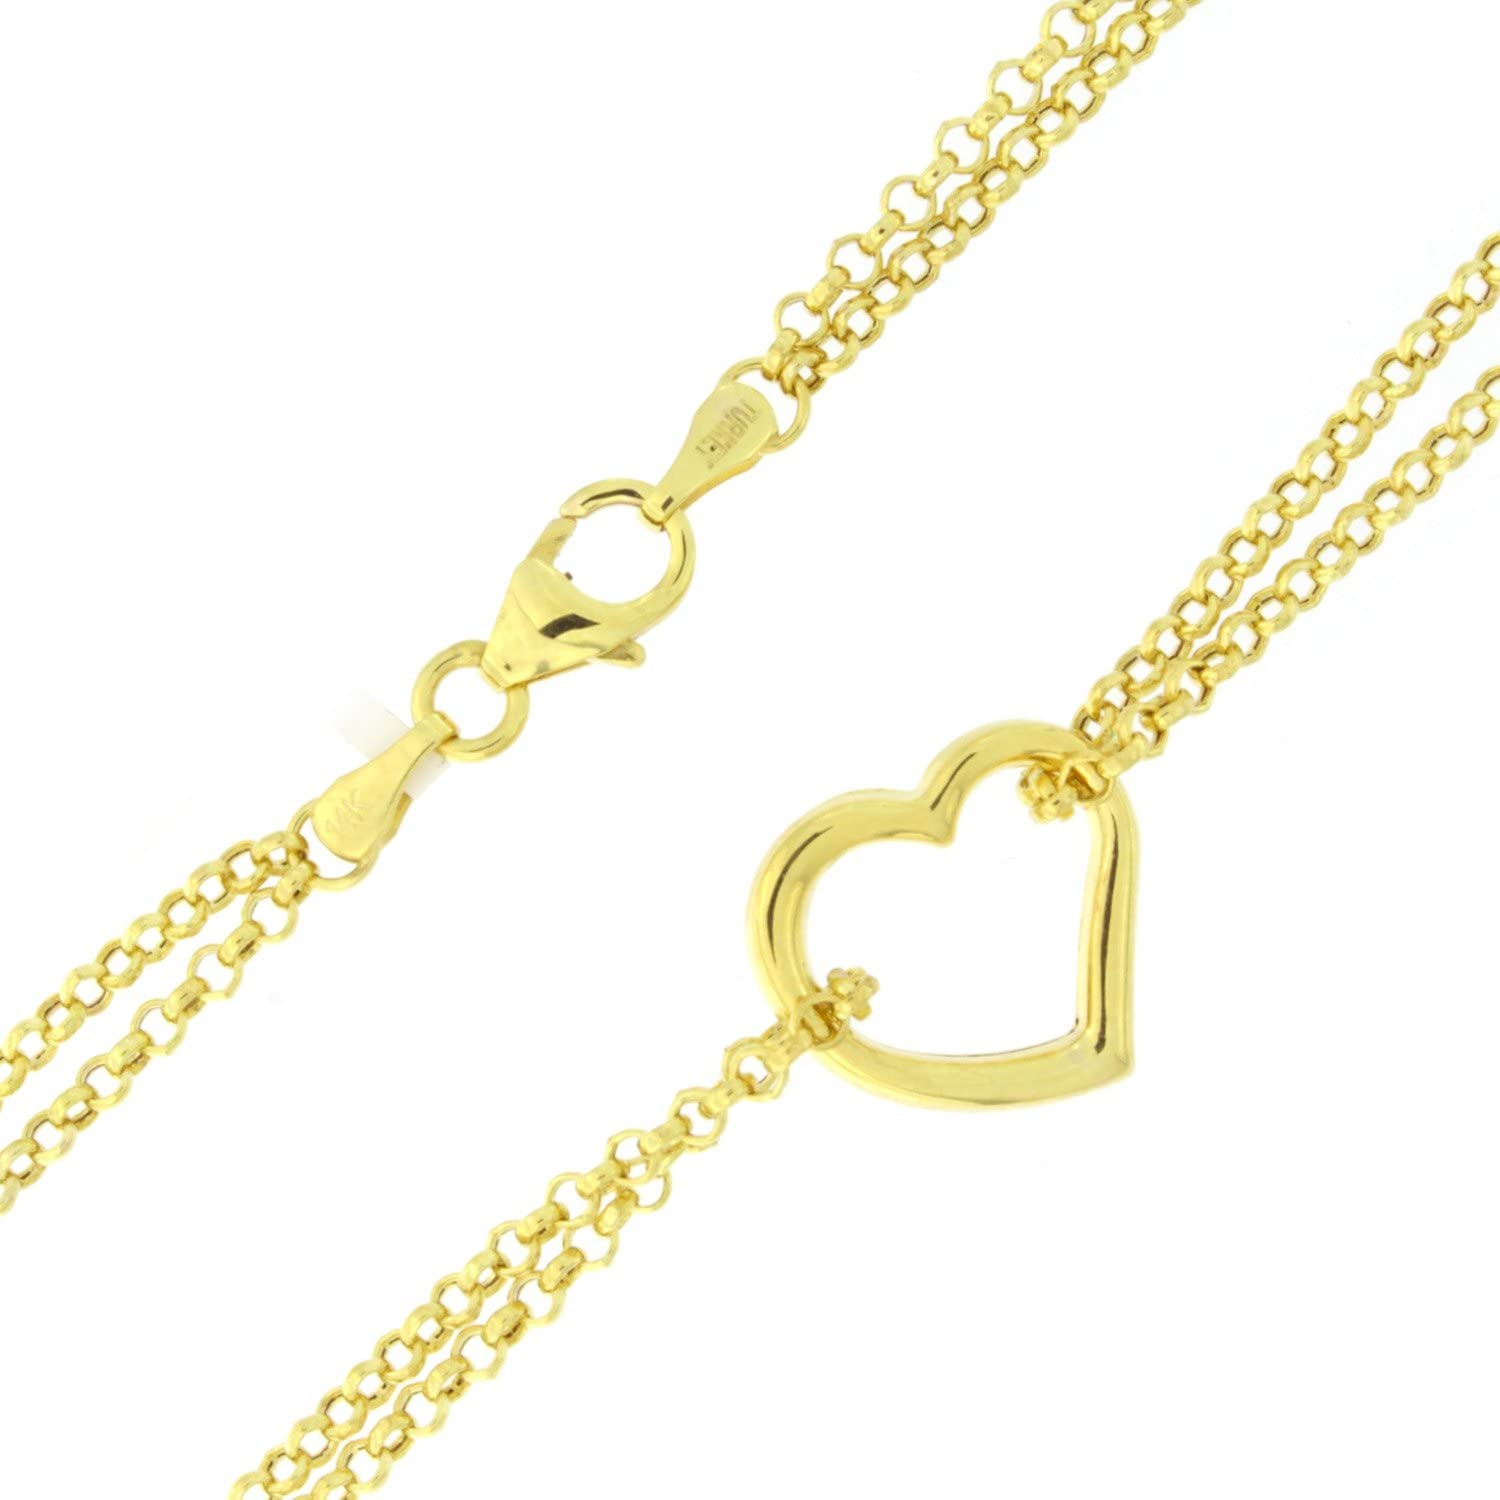 14k gold gold anklet 10 Beauniq 14k Yellow or White Gold 4mm Hammered Link Chain Anklet ankle bracelet link anklet beach jewelry